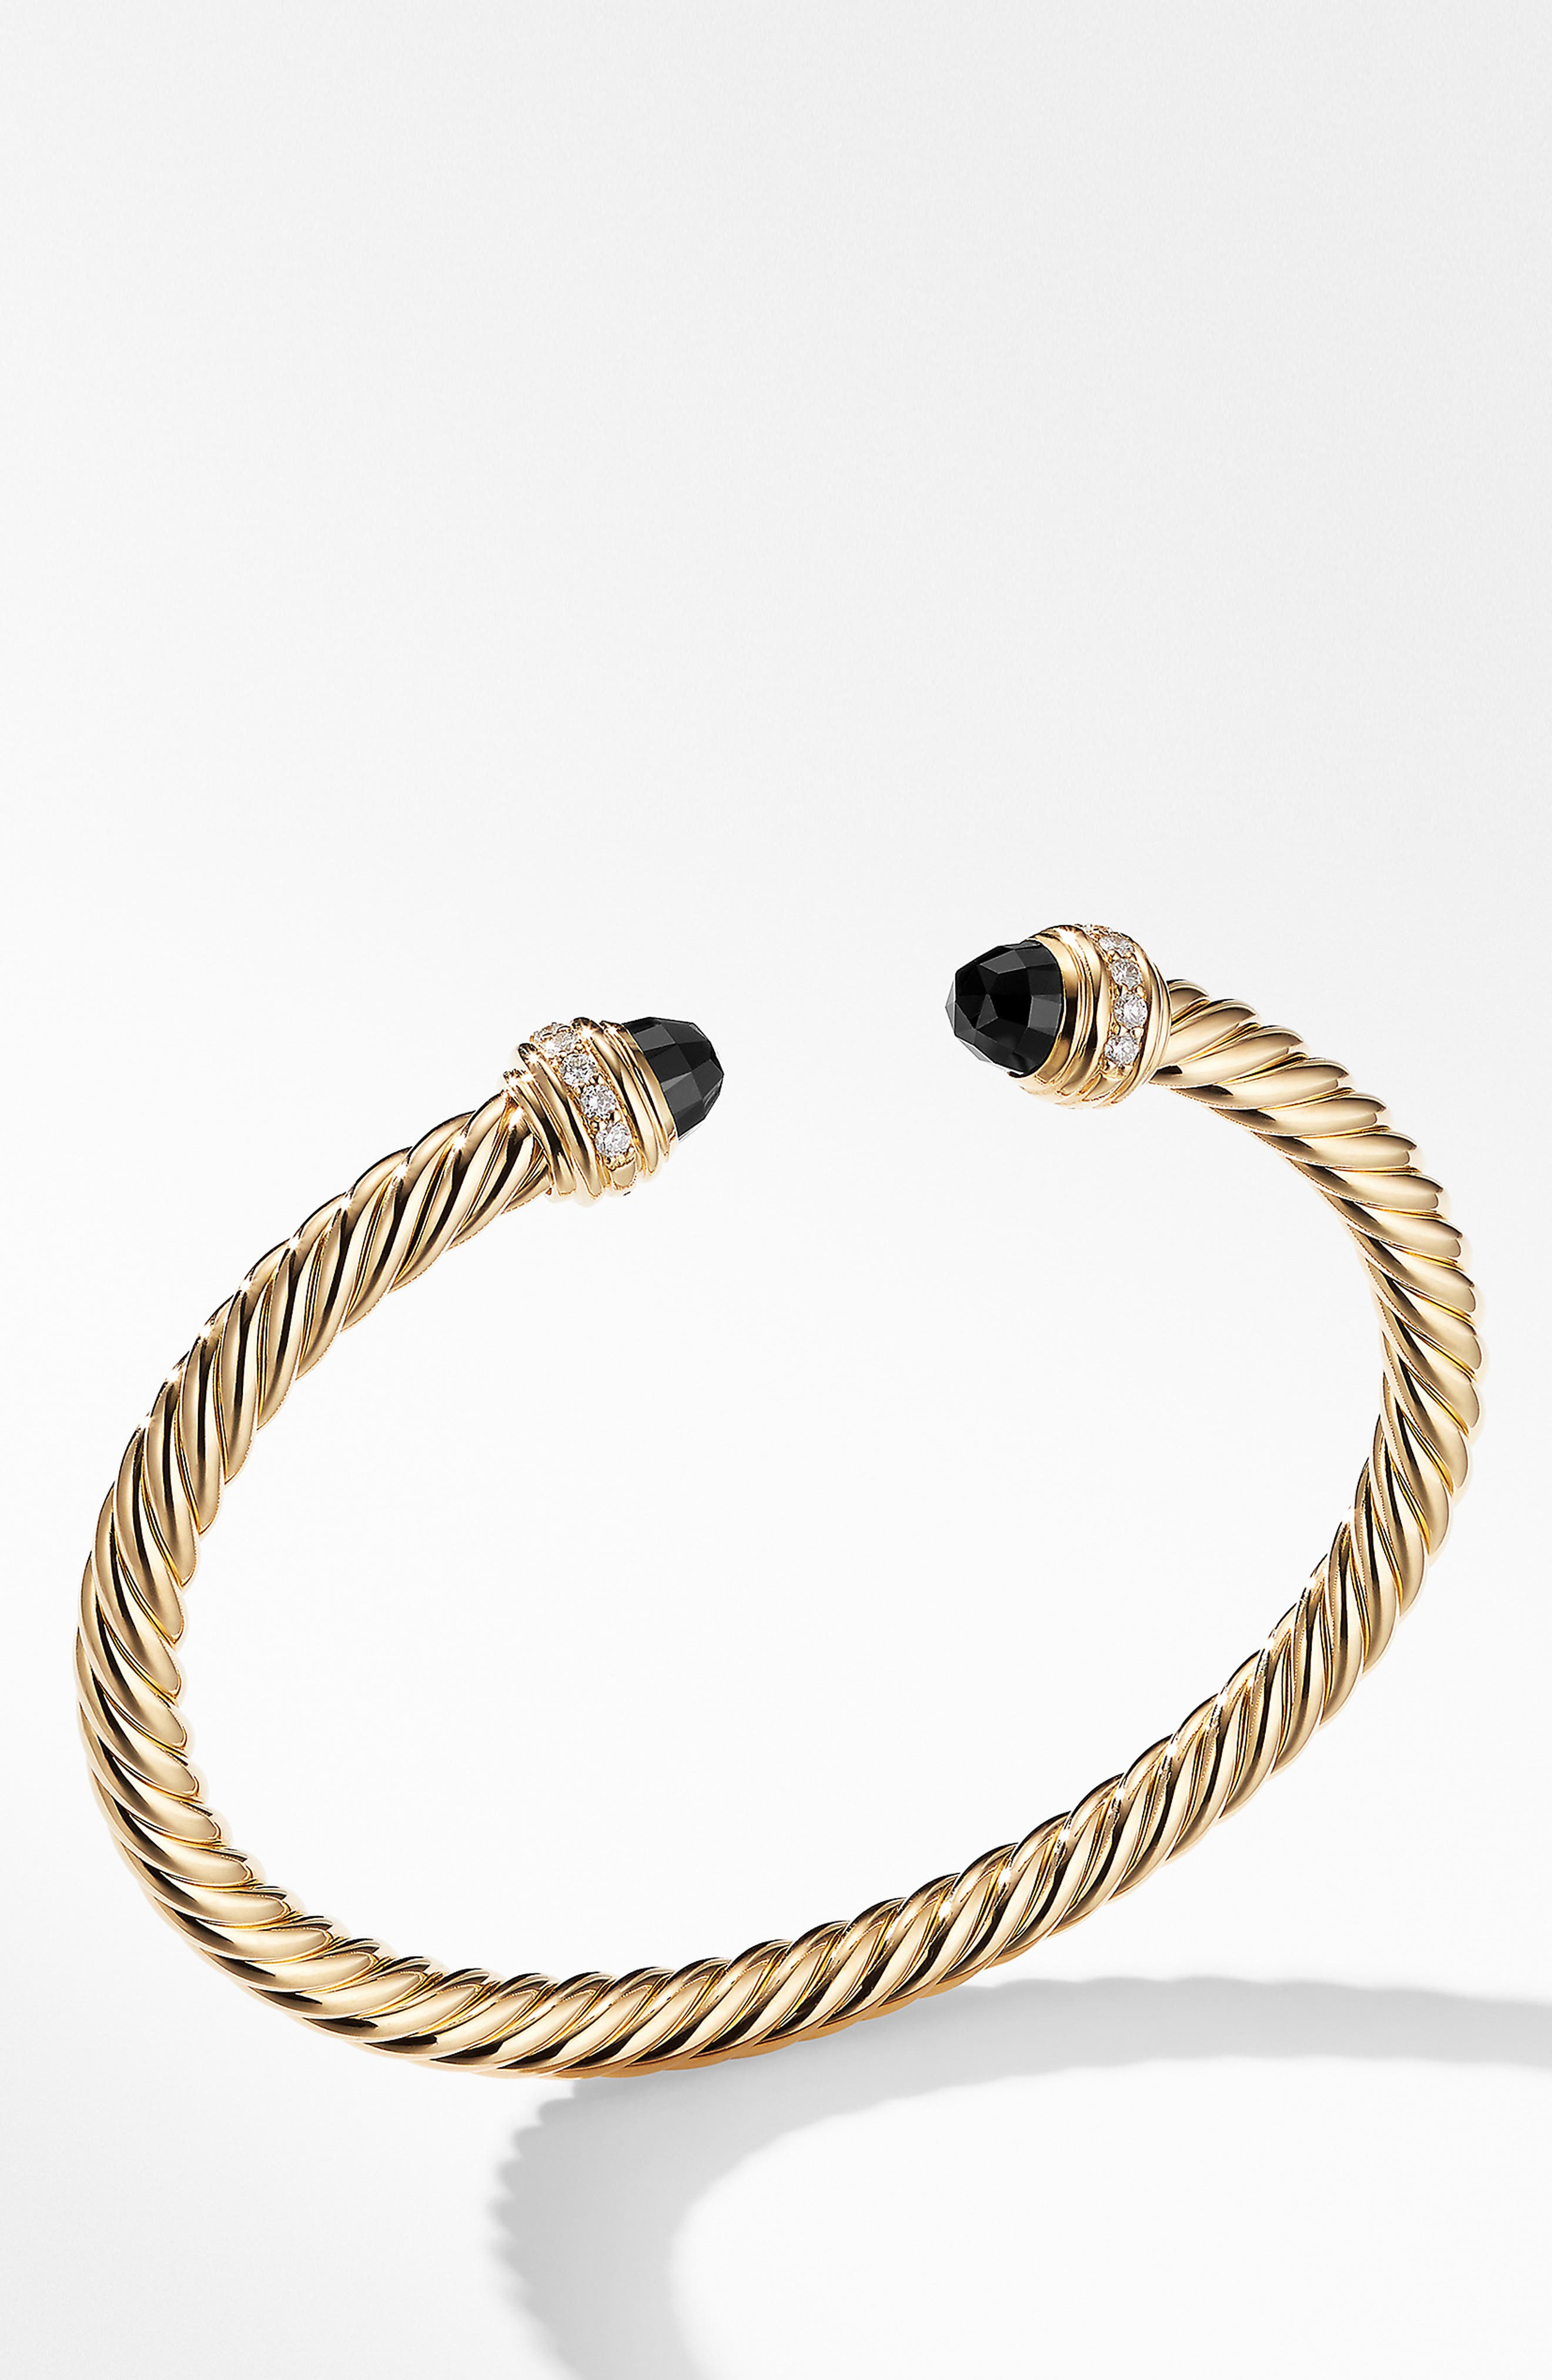 Cable Classics Bracelet with Semiprecious Stones & Diamonds, 5mm,                         Main,                         color, YELLOW GOLD/ DIAMOND/ BLACK